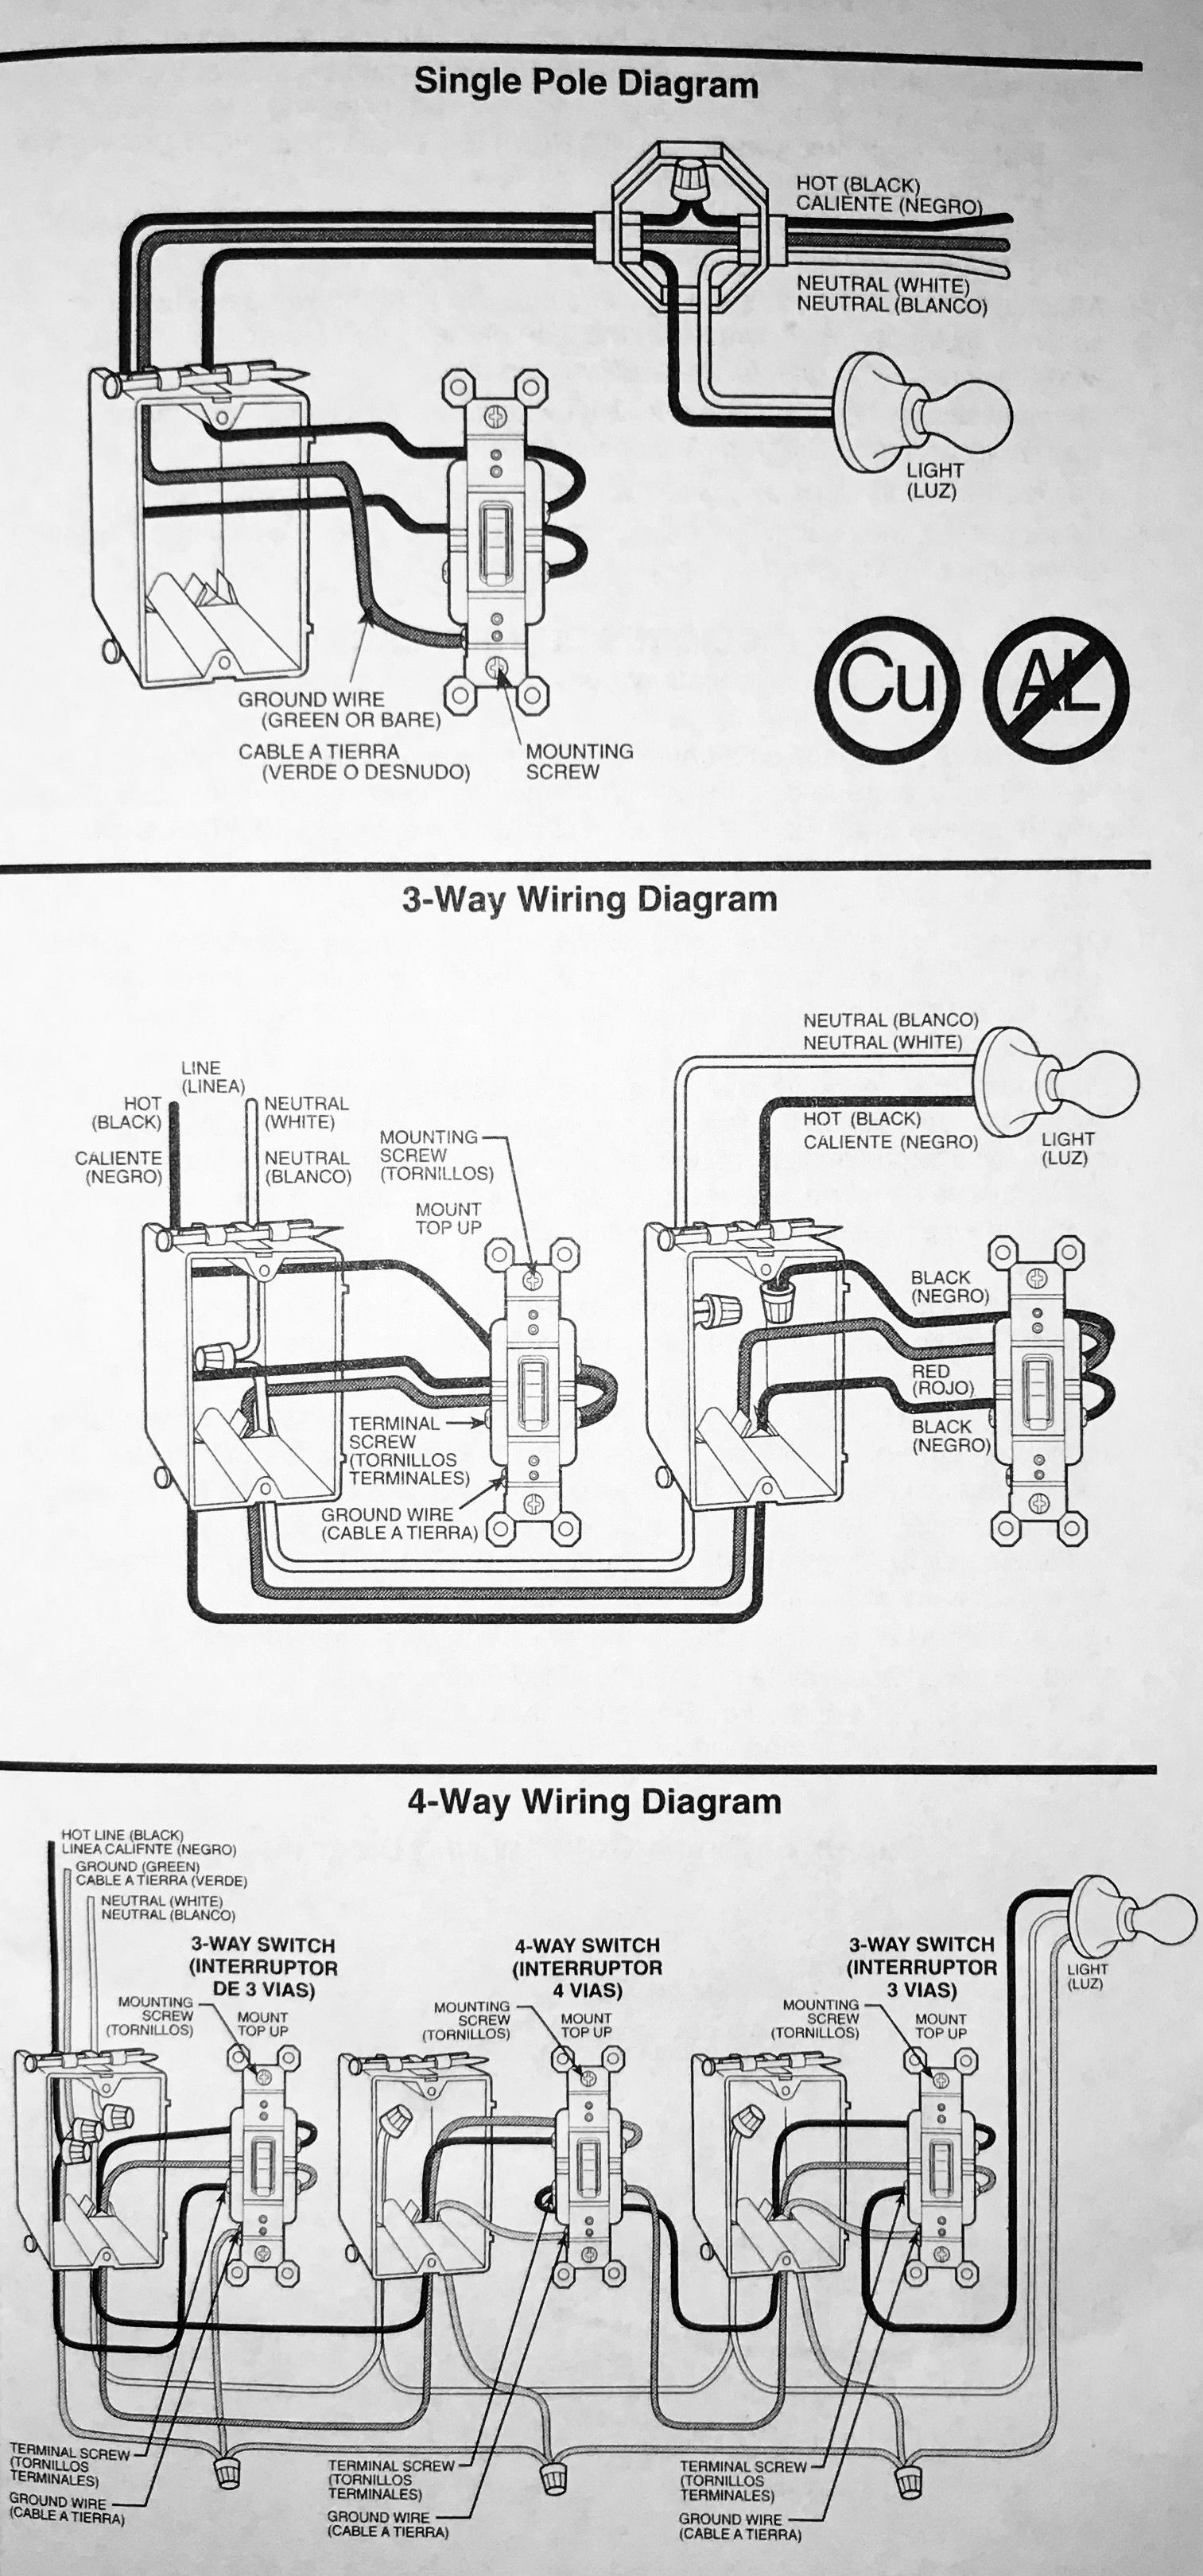 small resolution of 3 pole wiring diagram wiring diagram imp 3 pole switch wiring diagram 3 pole wire diagram